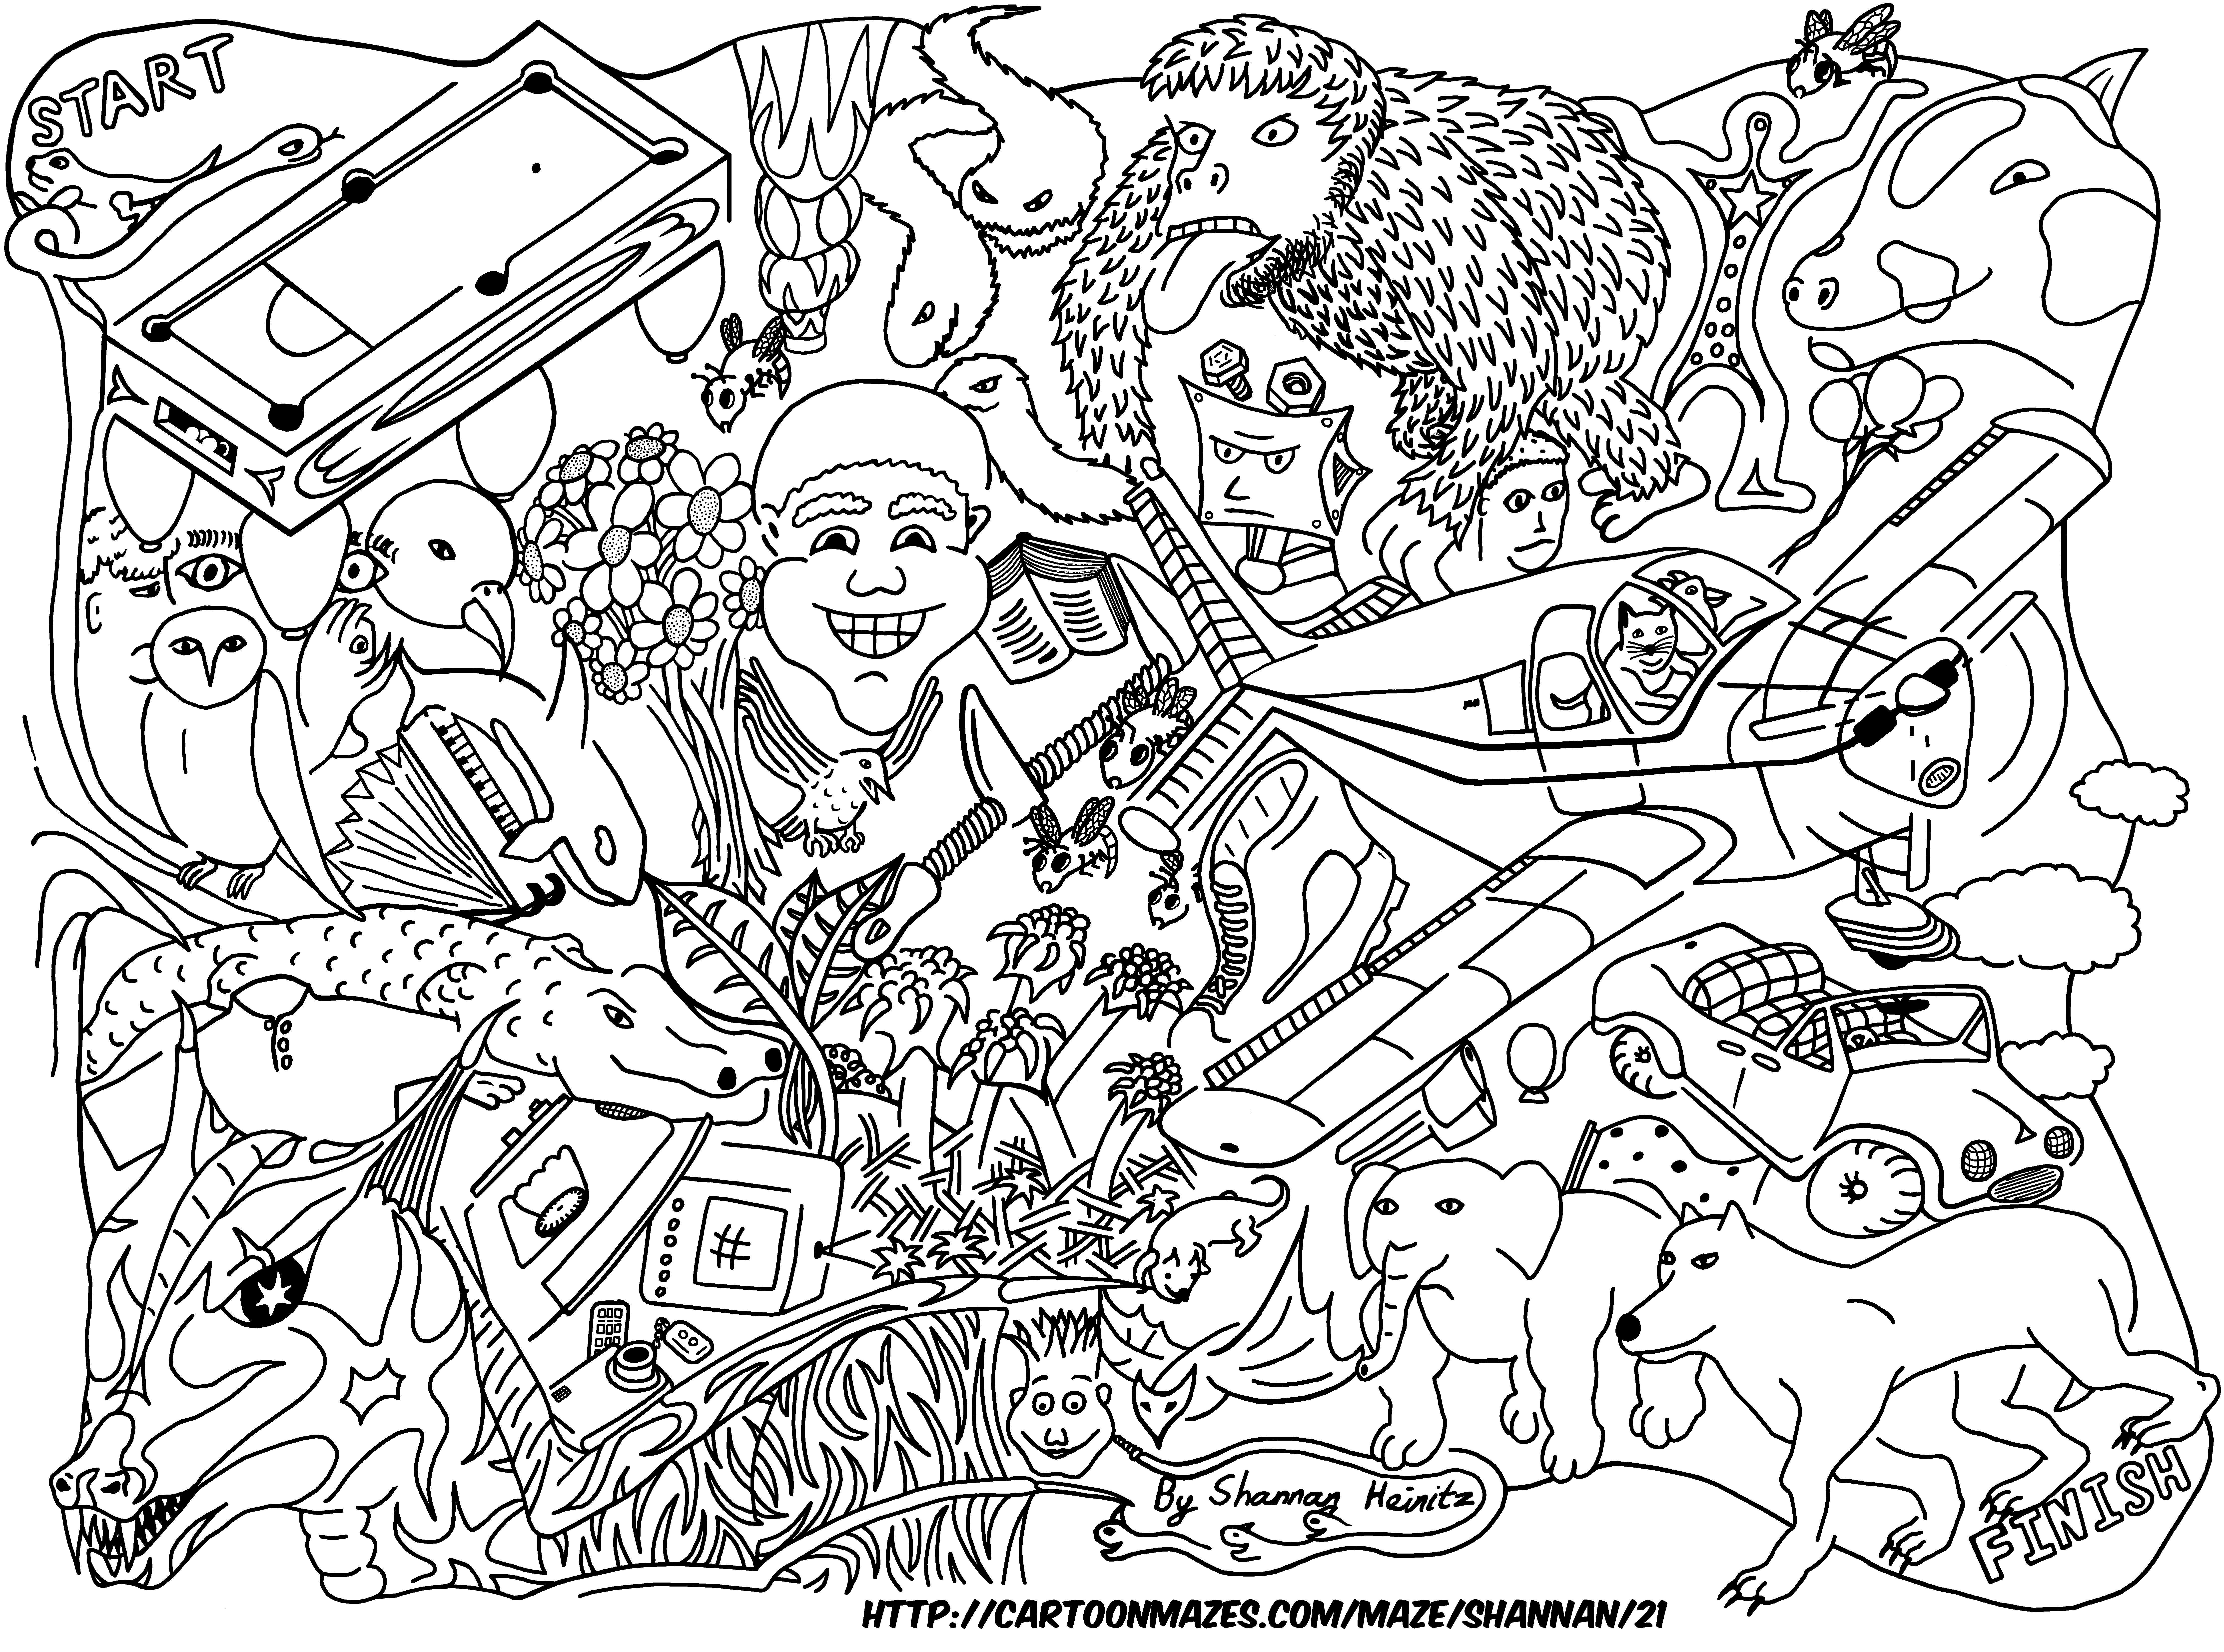 Maze Drawing at GetDrawings.com | Free for personal use Maze Drawing ...